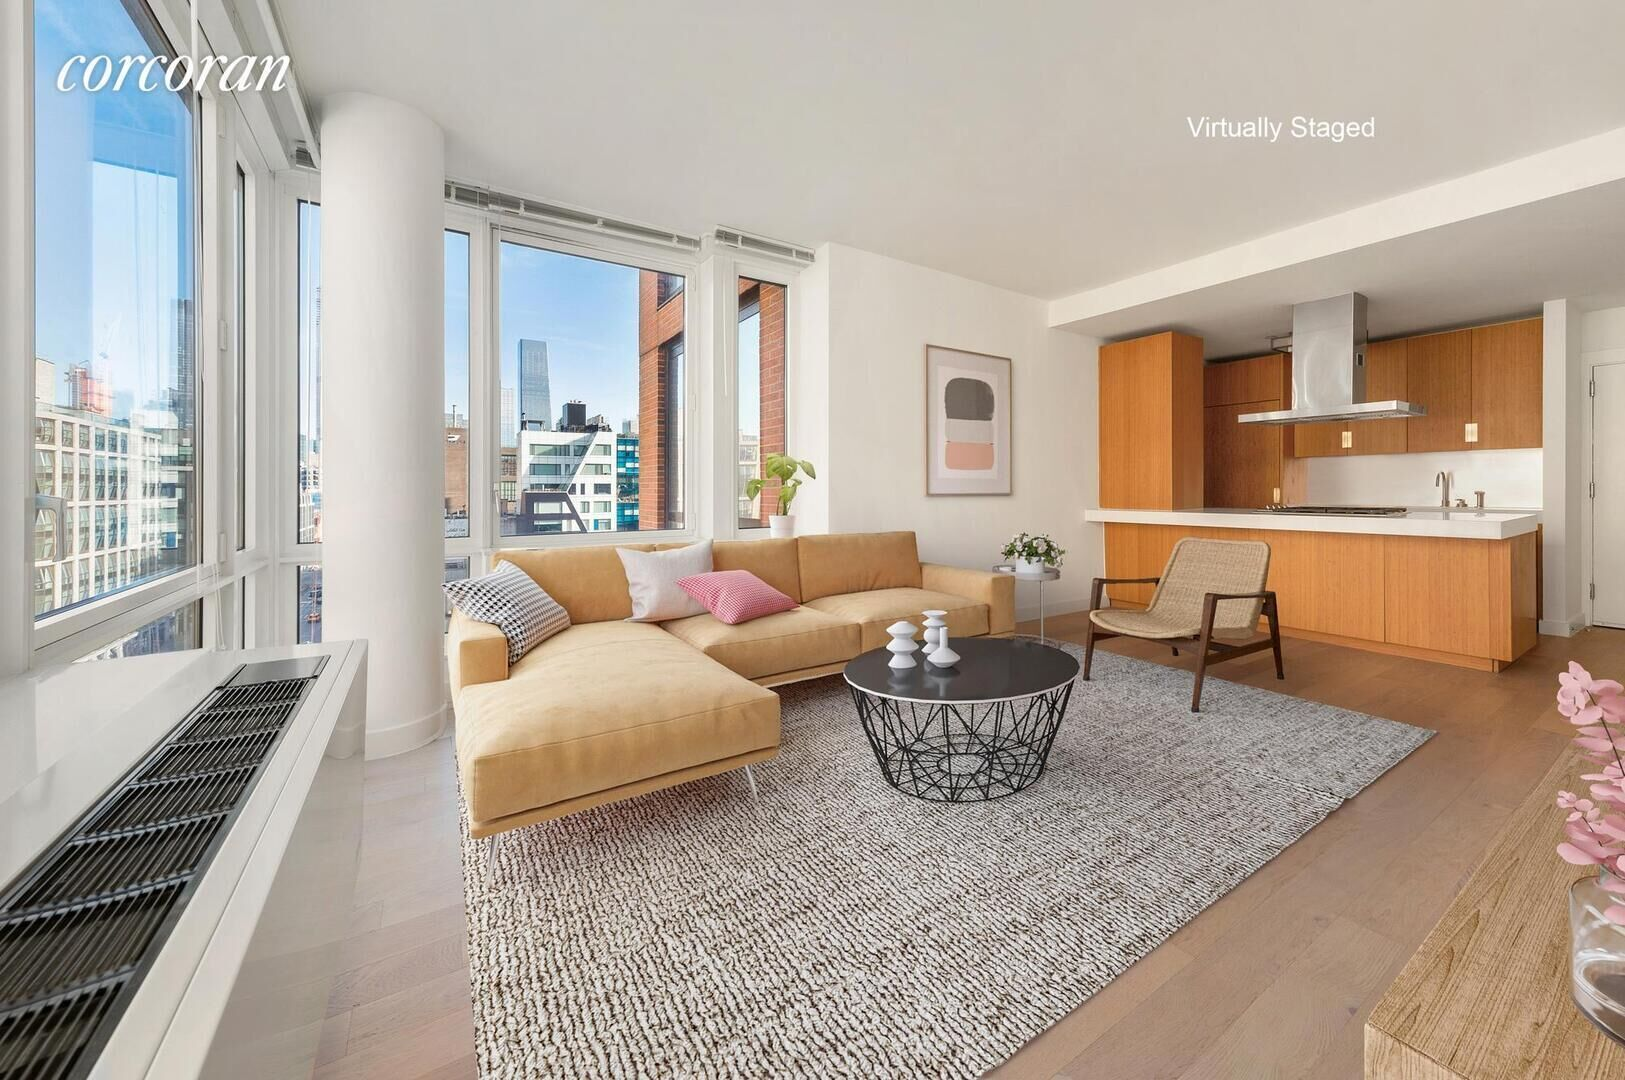 Apartment for sale at 450 West 17th Street, Apt 1020